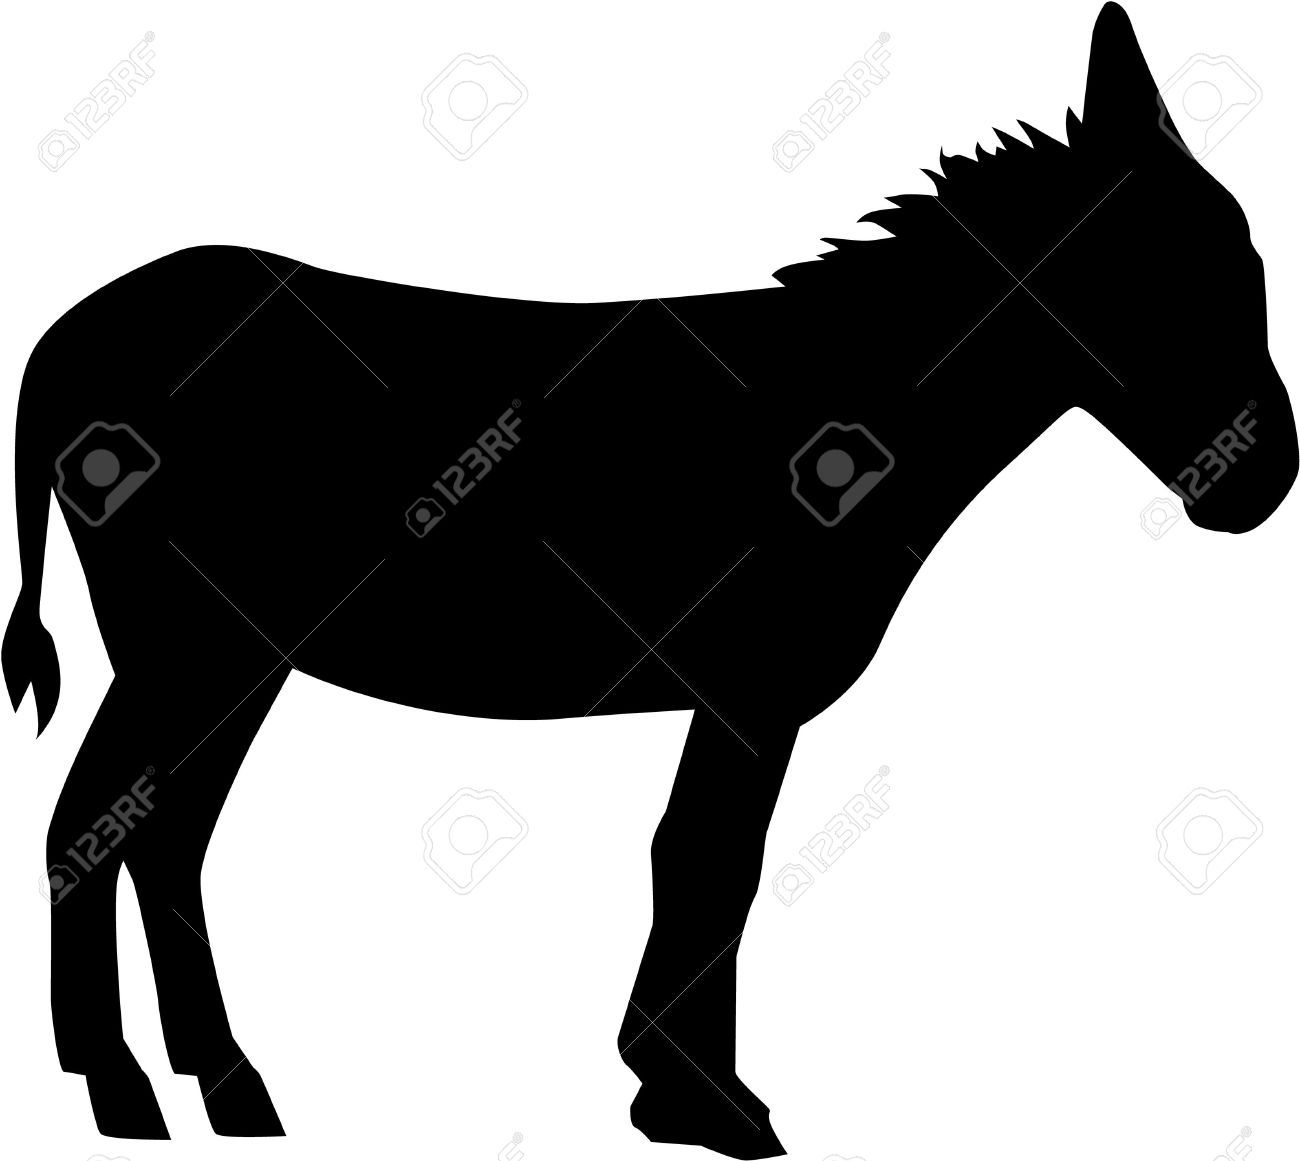 Donkey clipart black and white 4 » Clipart Portal.